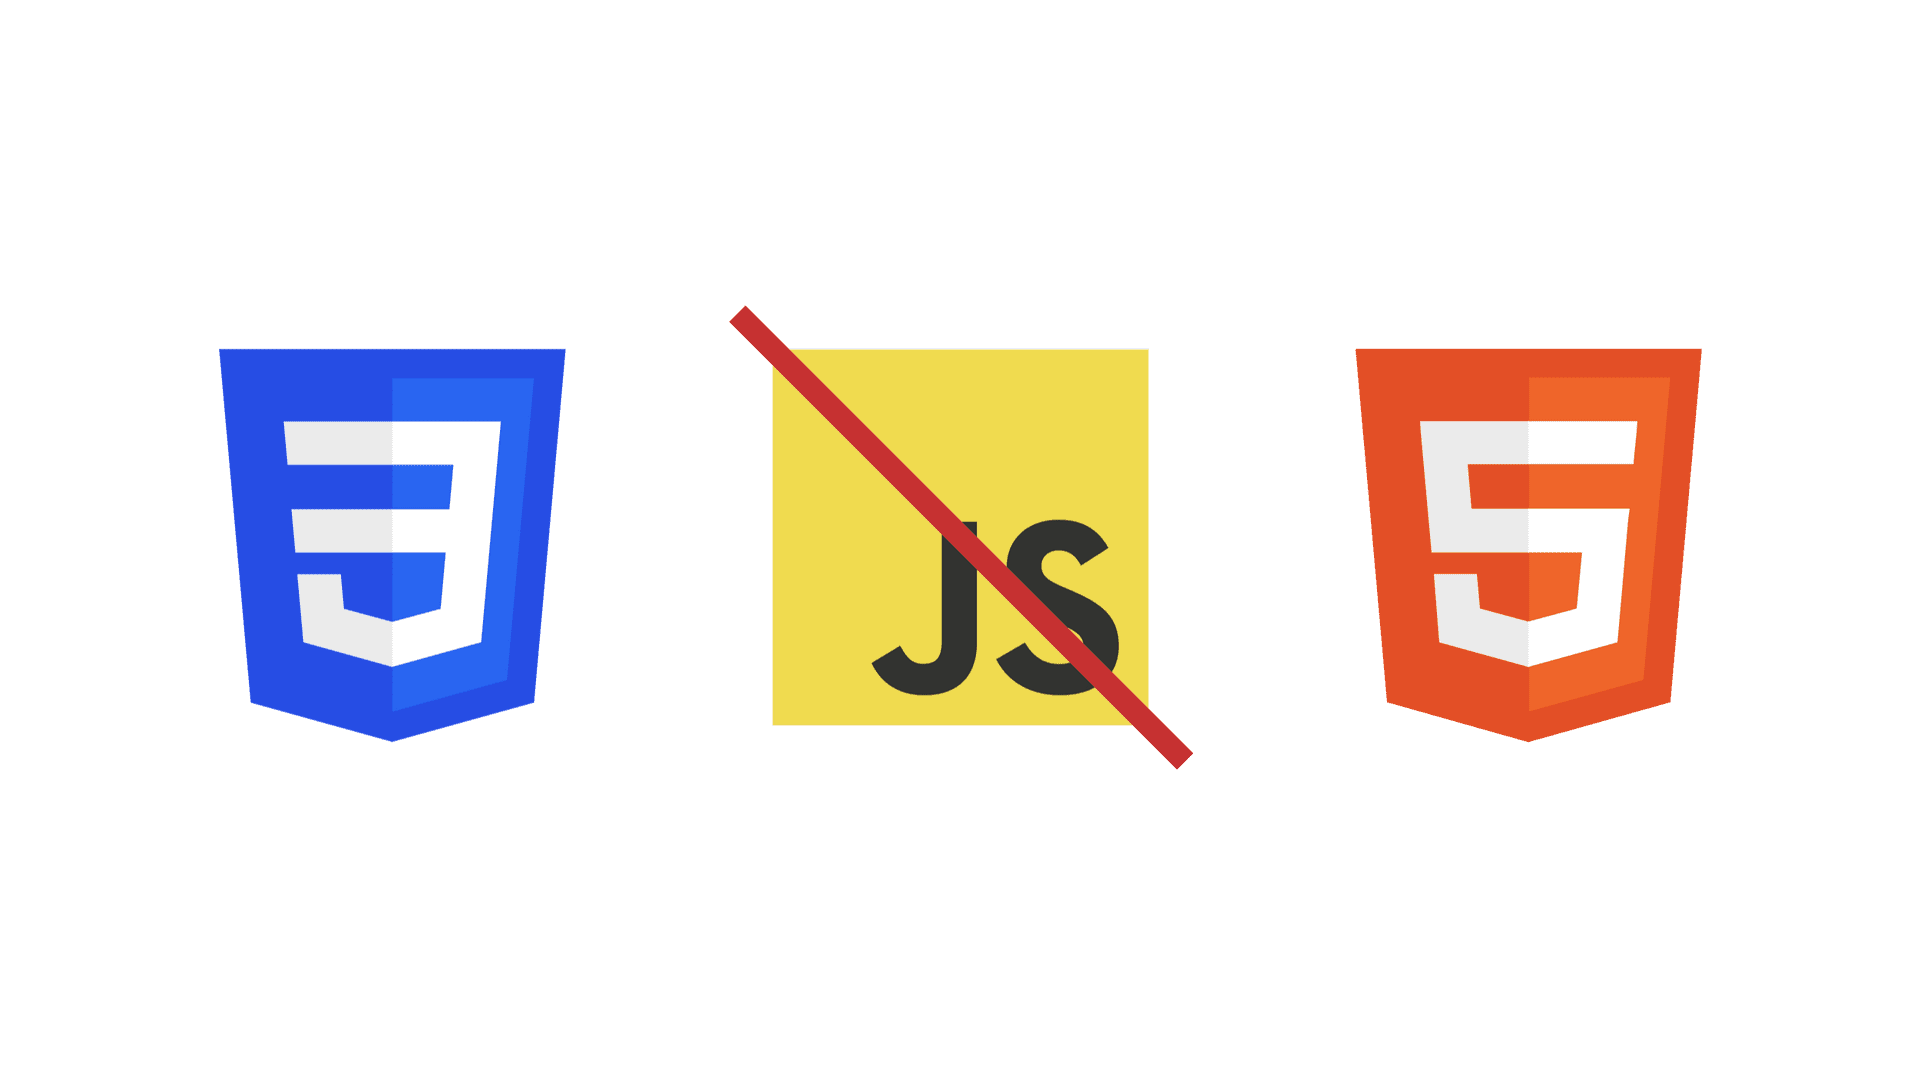 Three logos in a row, from left to right, the CSS 3 logo, JavaScript logo with a red diagonal line through it and the HTML 5 logo